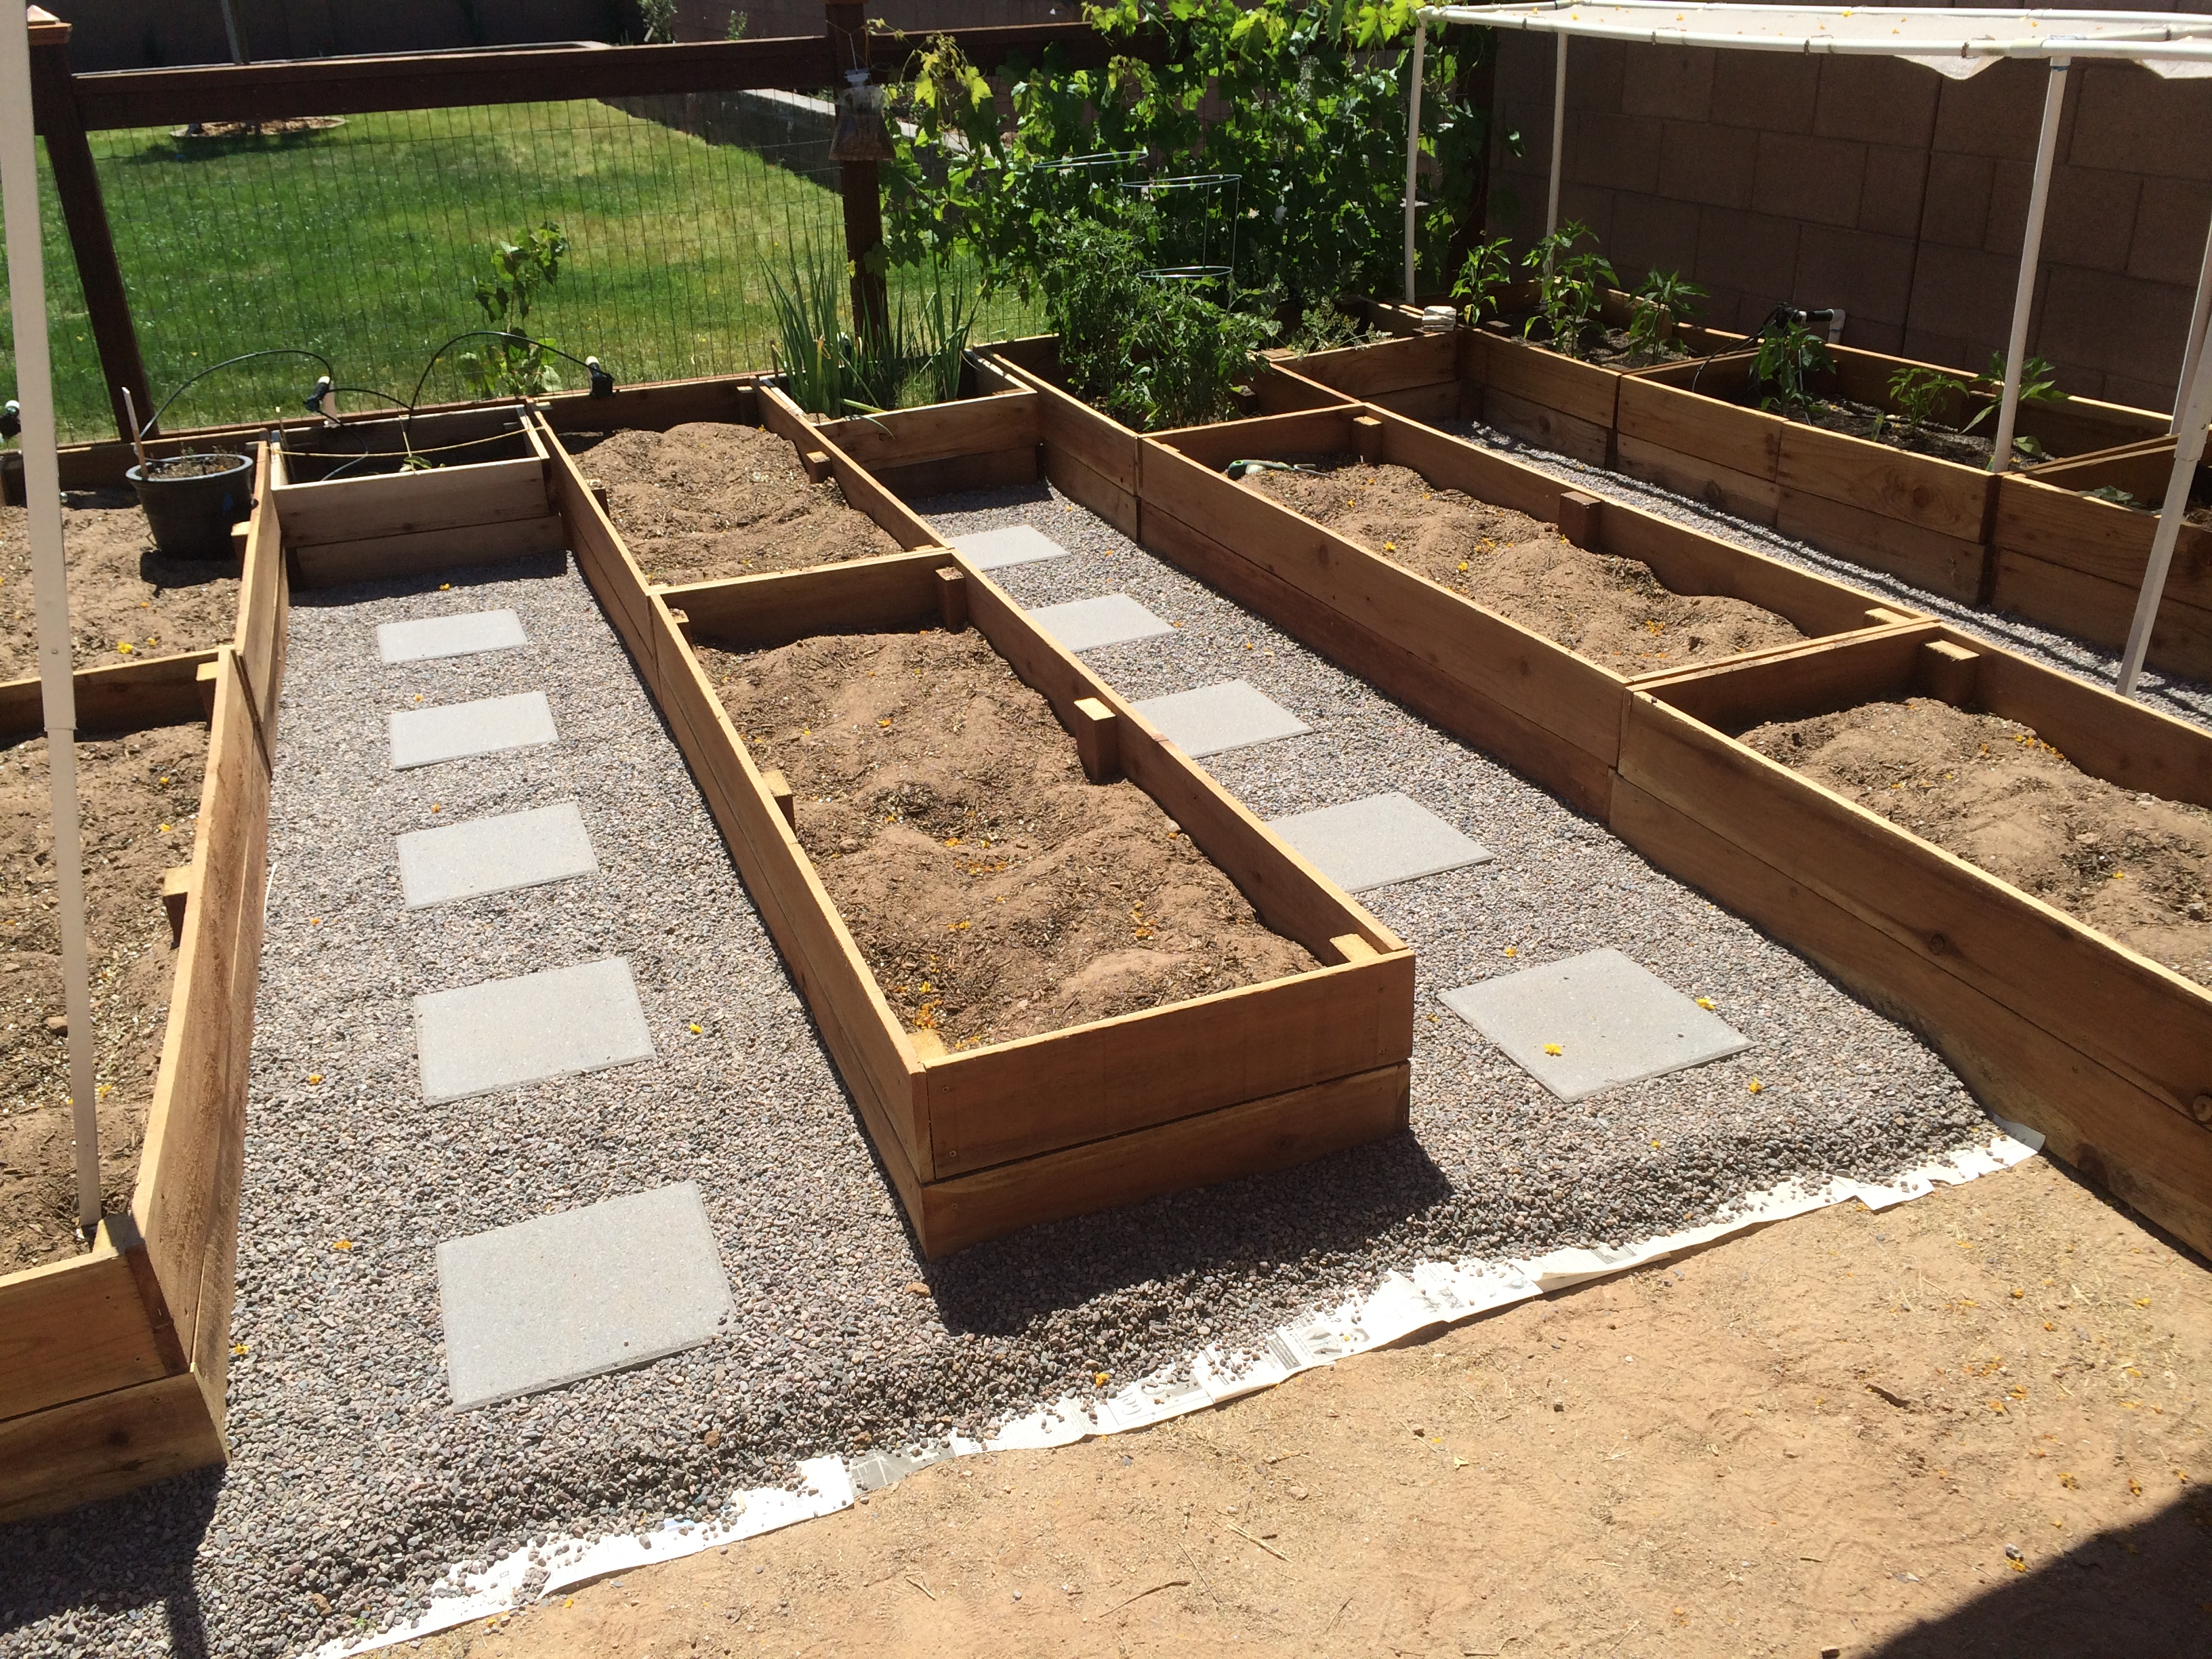 I Came Across These Photos On My Computer And Have Been Meaning To Share  How We Built The Garden Boxes At Our First House. We Have Since Moved And  Our ...